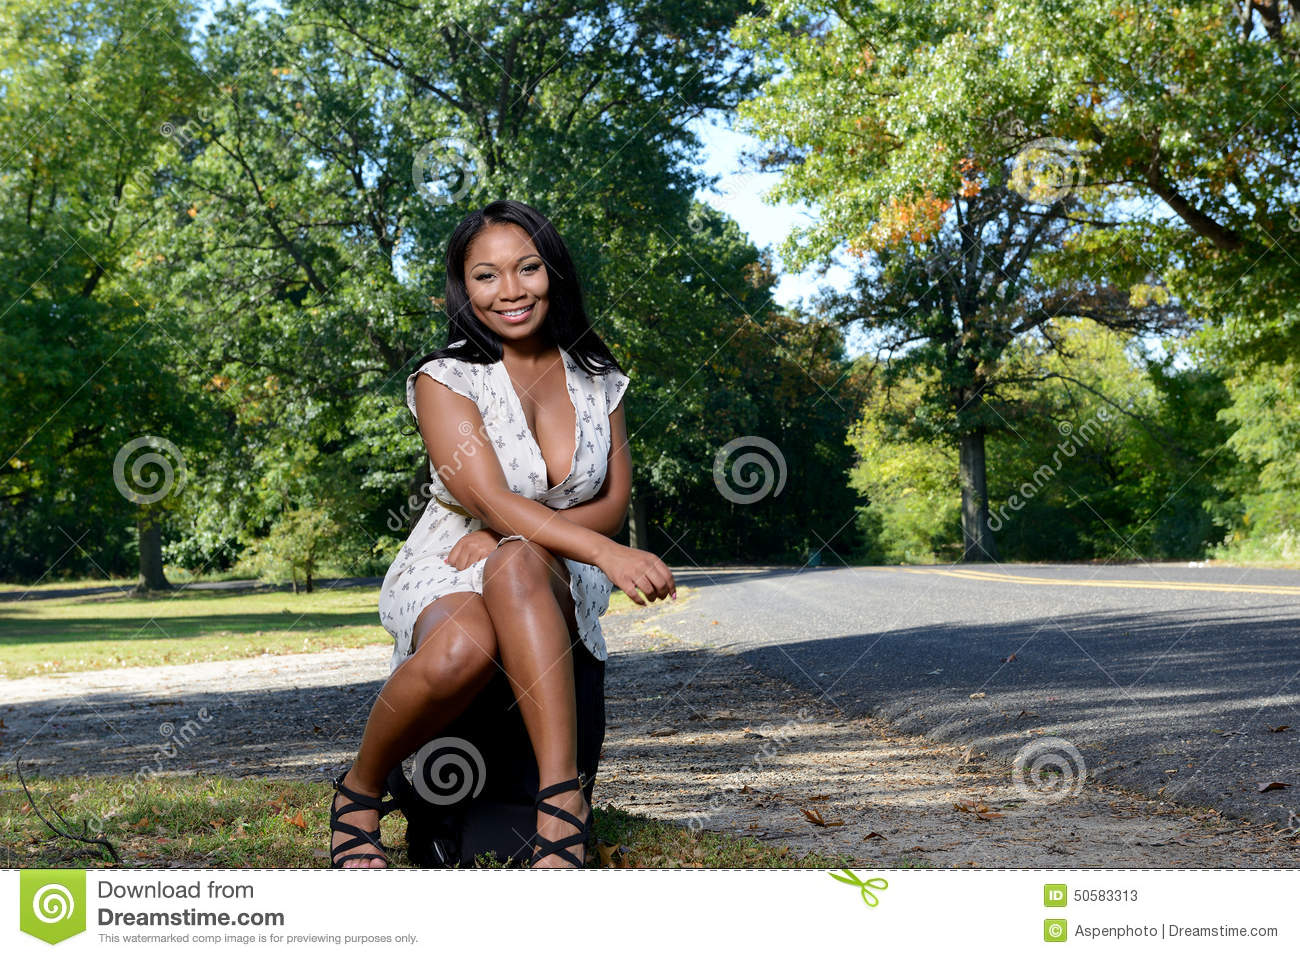 Beuatiful African American woman sitting next to road